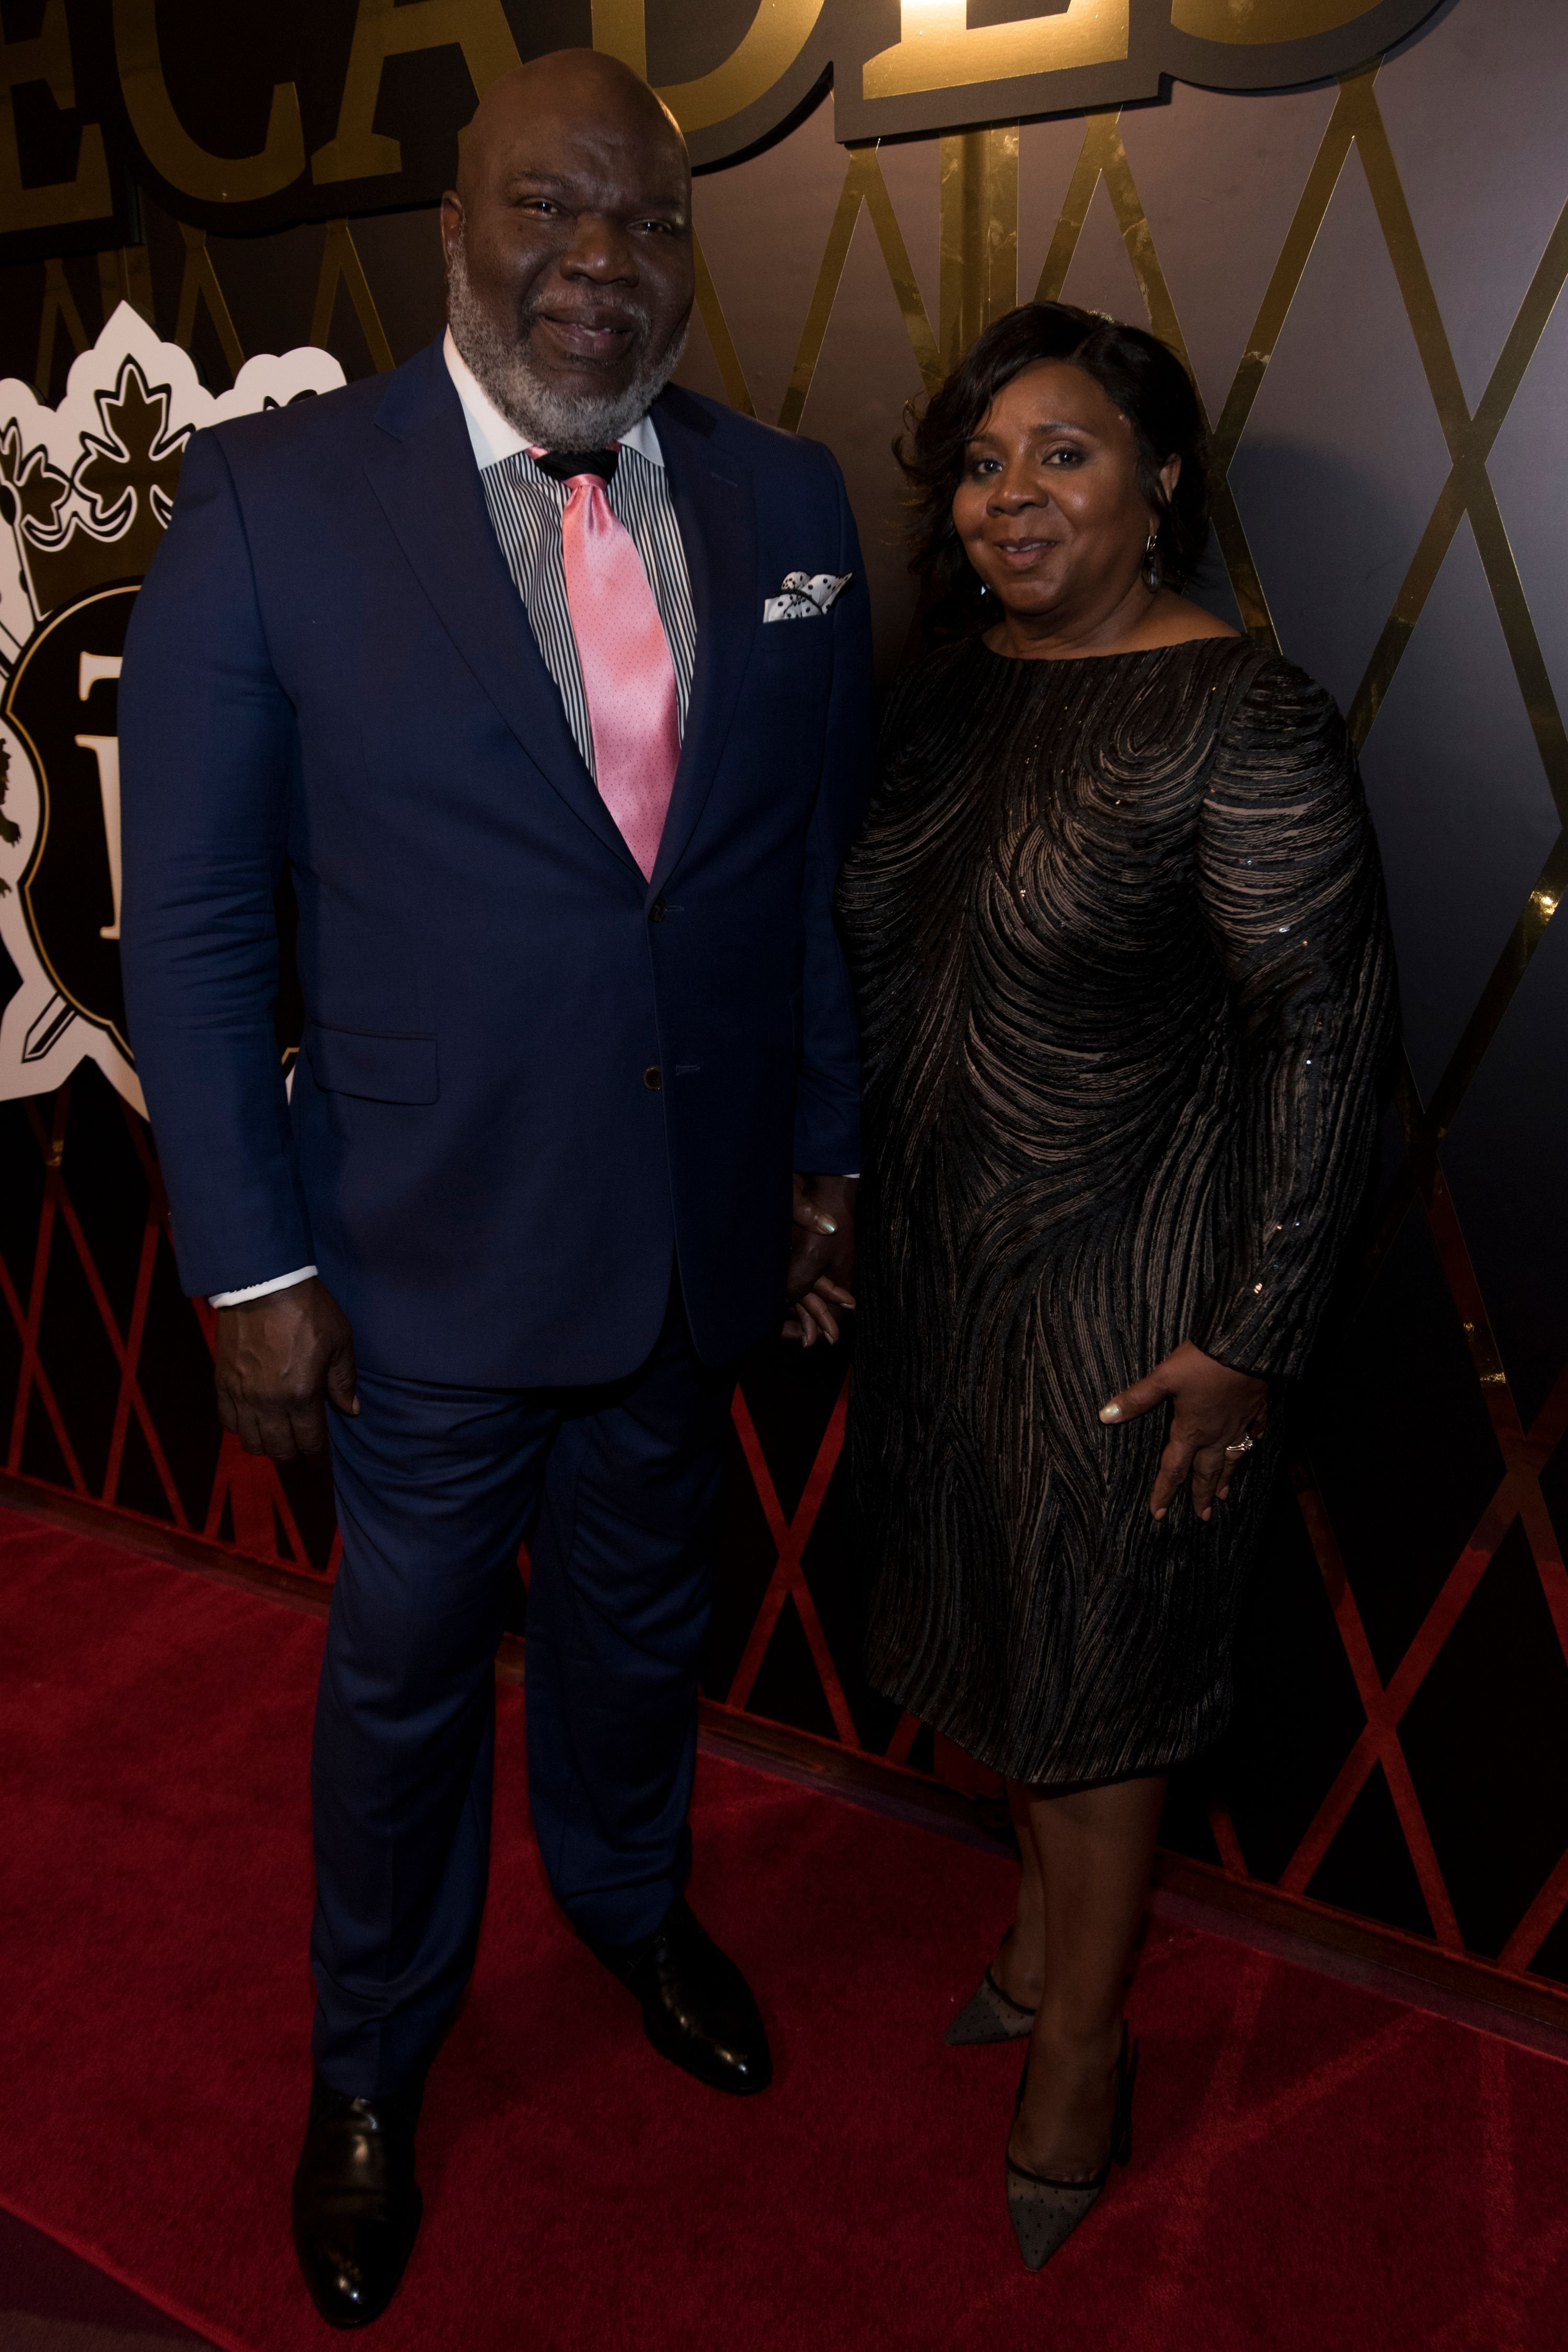 Bishop T.D. Jakes and his wife Serita Jakes pose for a photo at Bishop T.D. Jakes' surprise 60th birthday celebration at The Joule Hotel on June 30, 2017 in Dallas, Texas. | Source: Getty Images